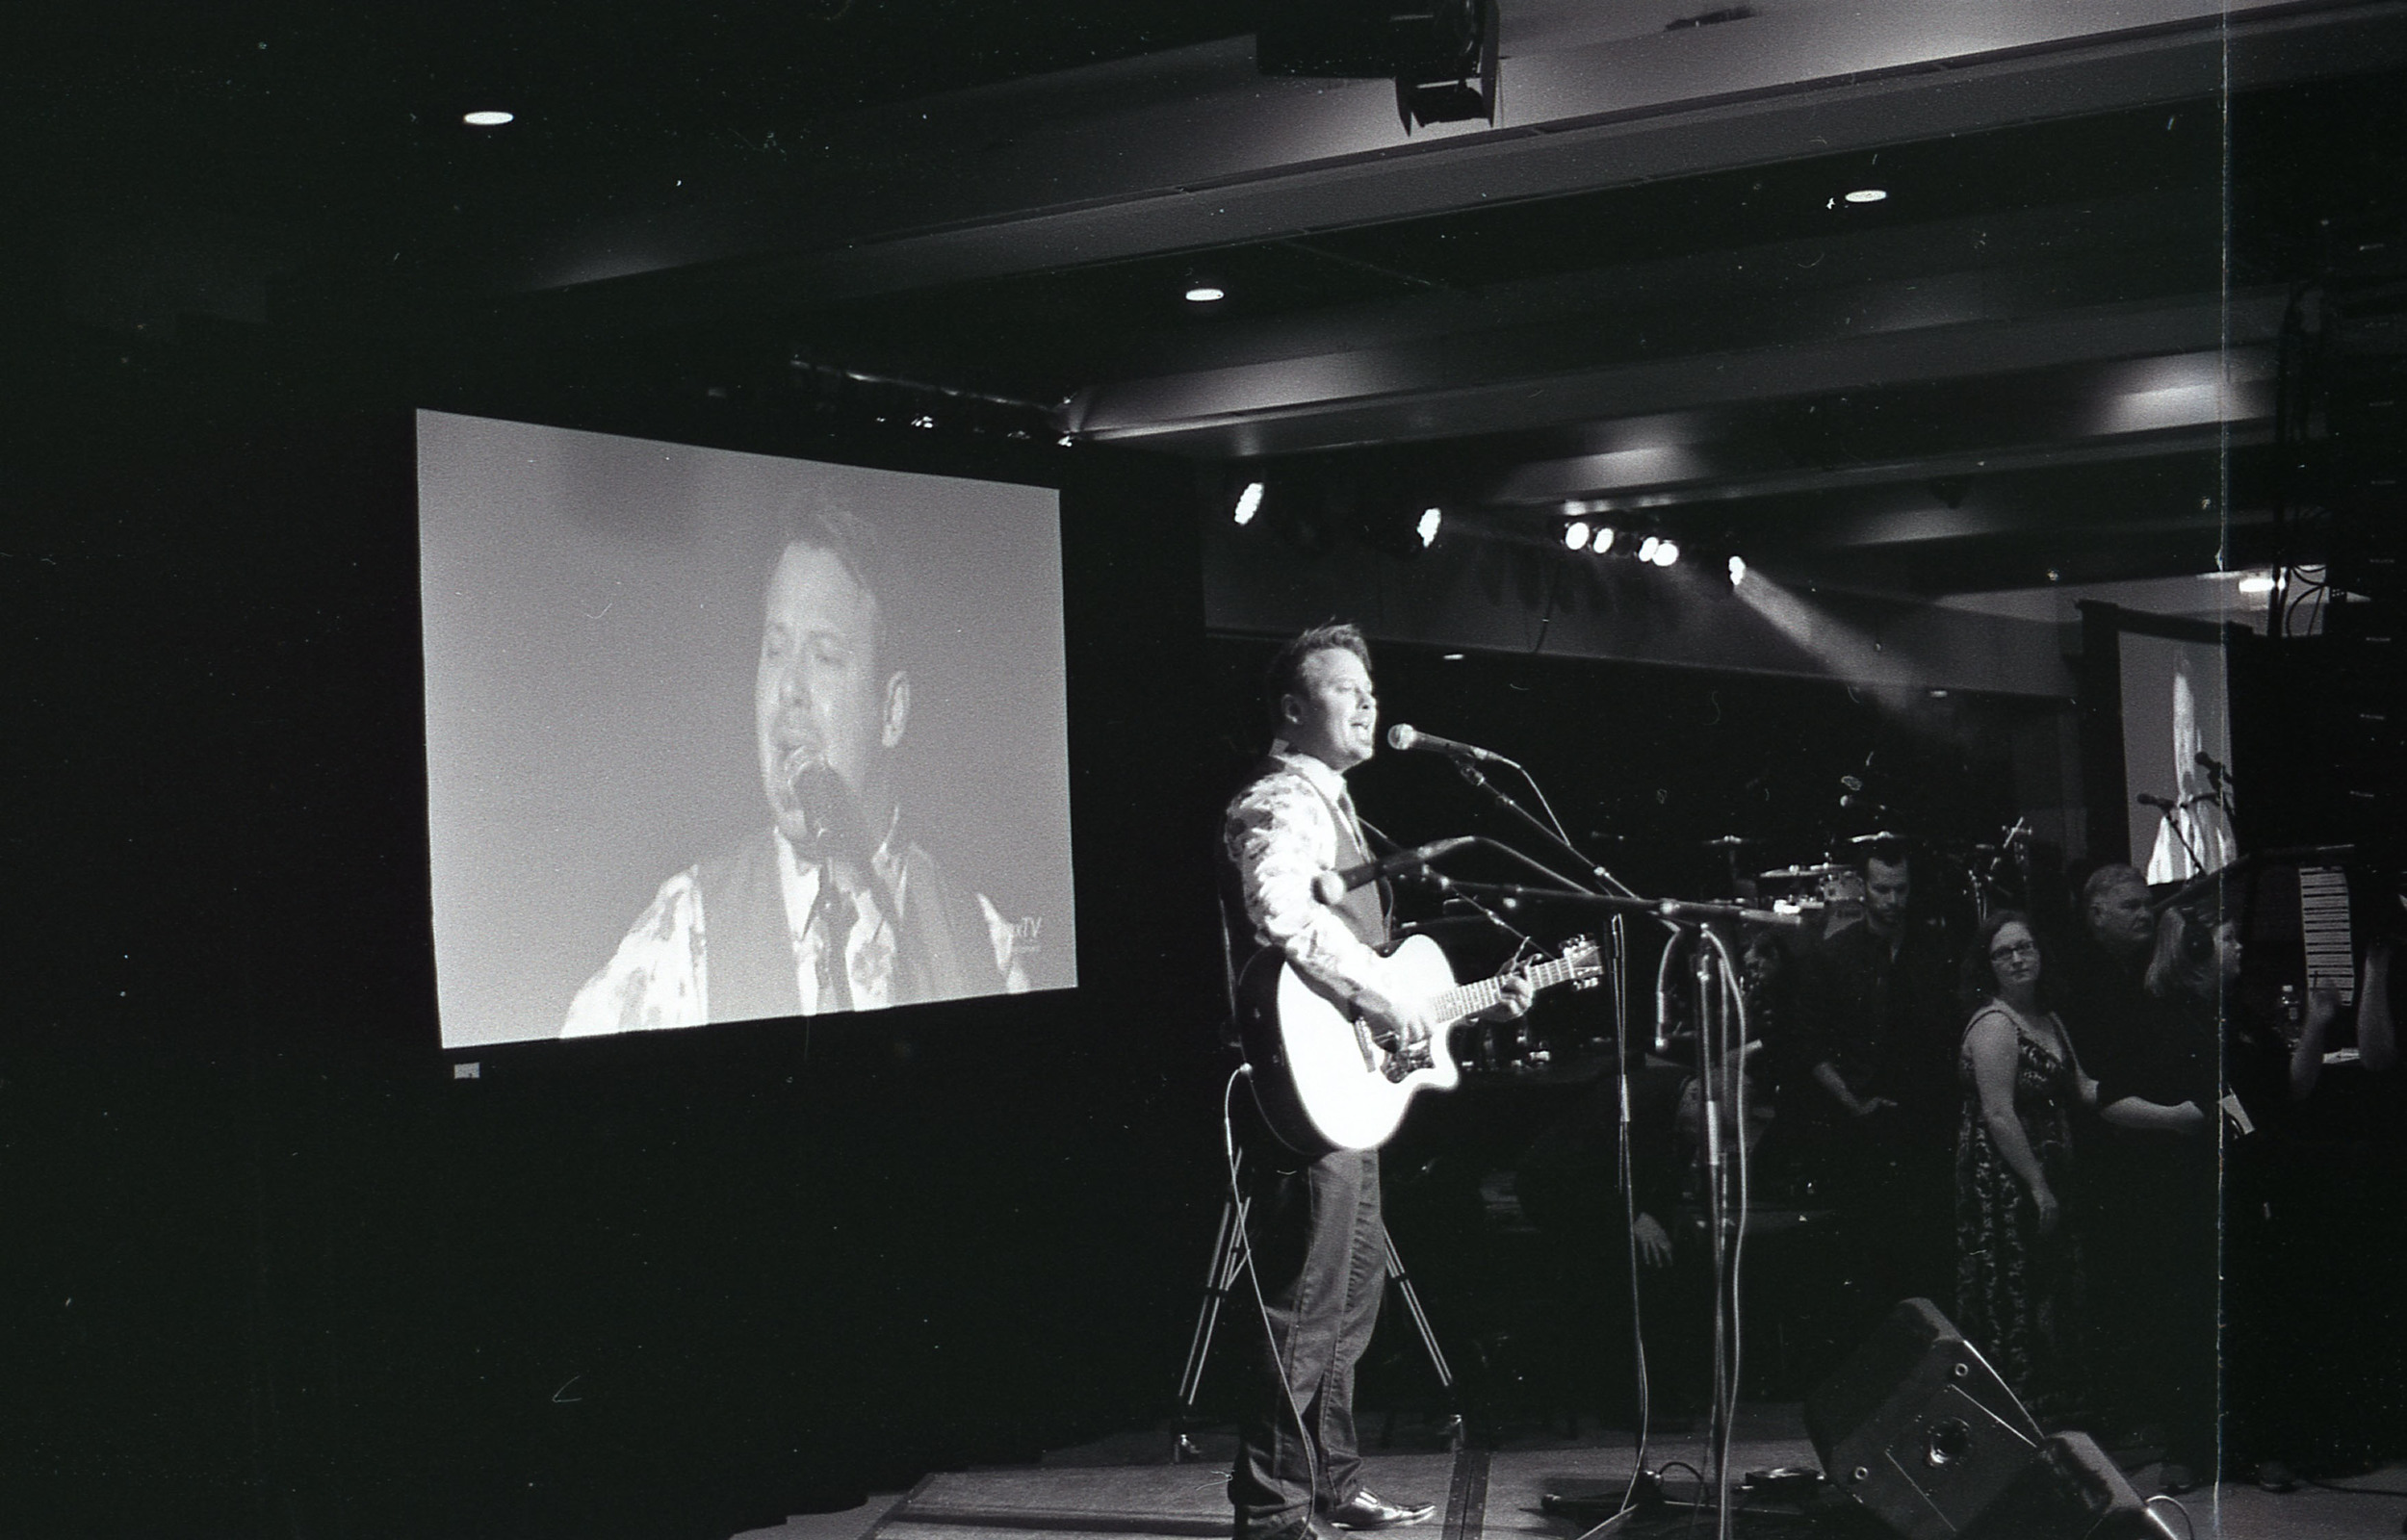 Alex Runions on-stage performing a song and taking home two SCMA awards. | Pentax K1000 / Kodak Tri-X @ 1600